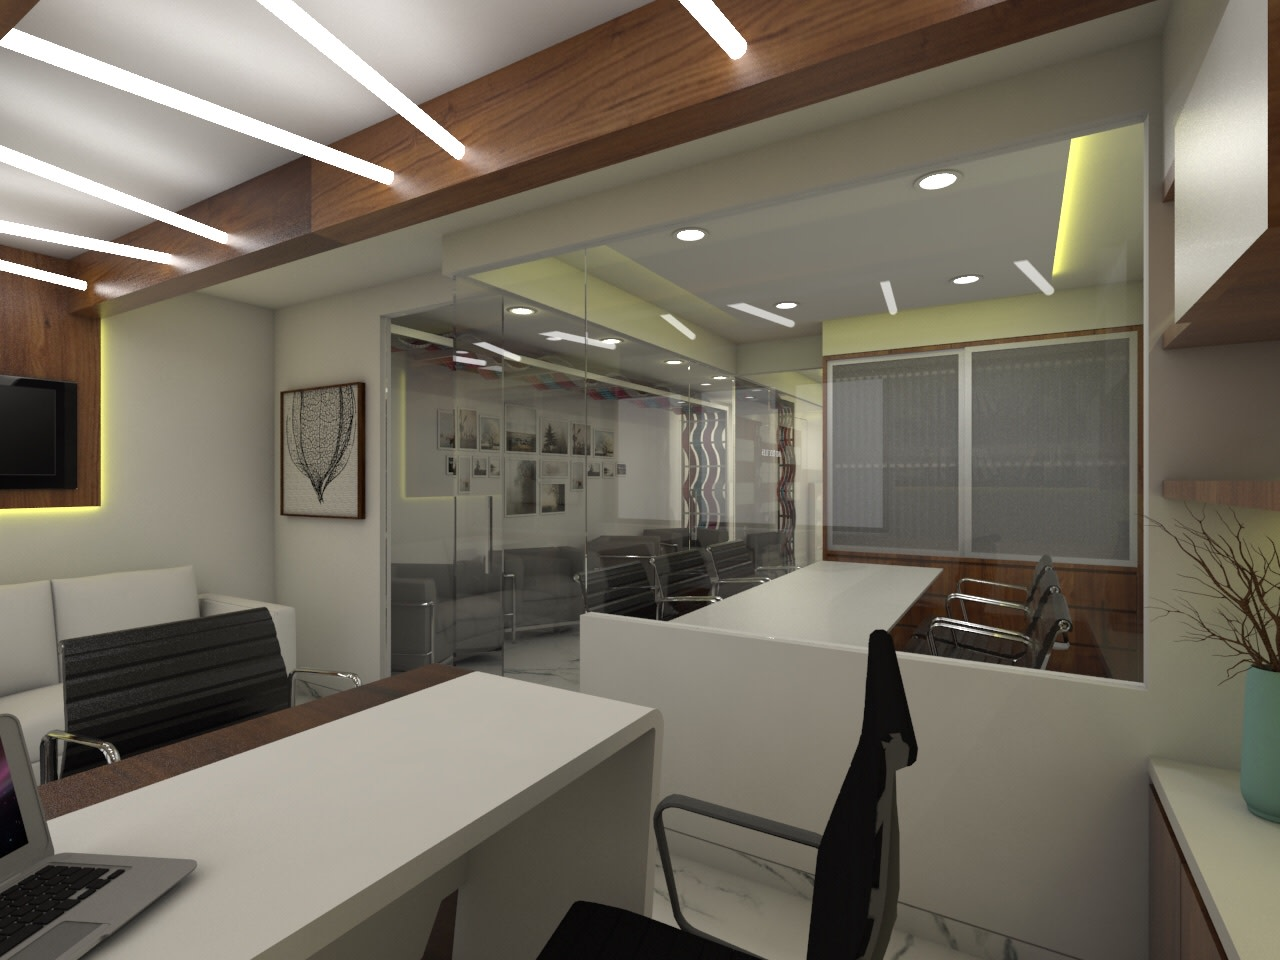 Office Space with White Wooden Desk and Glass Partition by Umesh Vishwakarma Modern | Interior Design Photos & Ideas